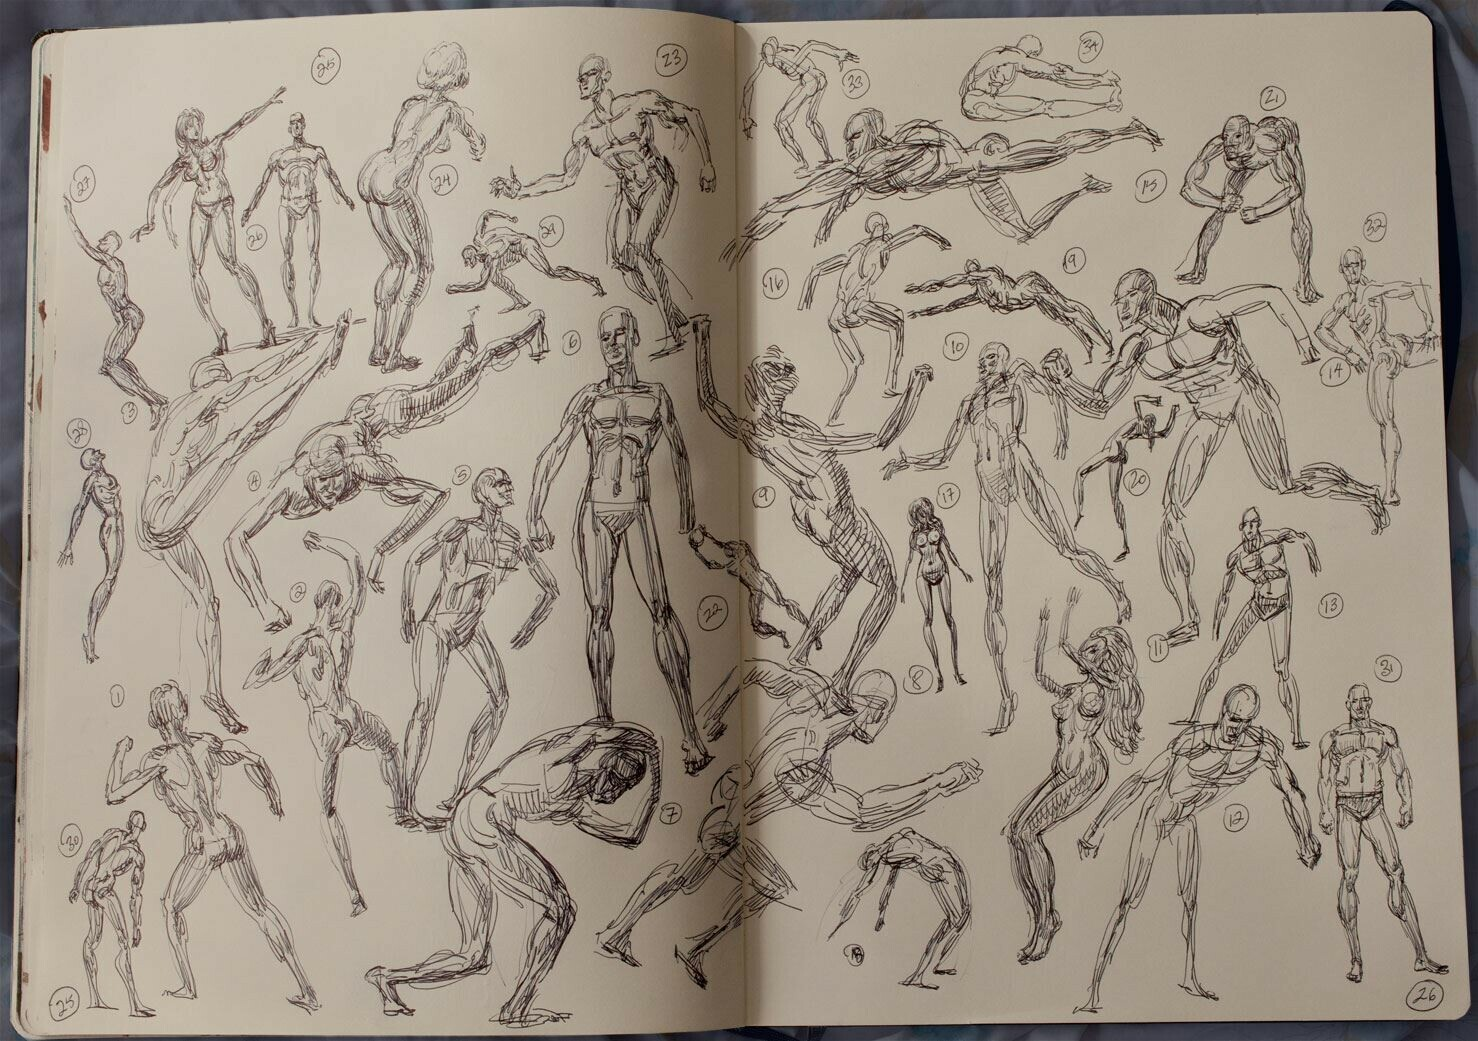 Keep a sketch book and draw manikin figures over and over, male and female, until drawing people is as free as hand writing.